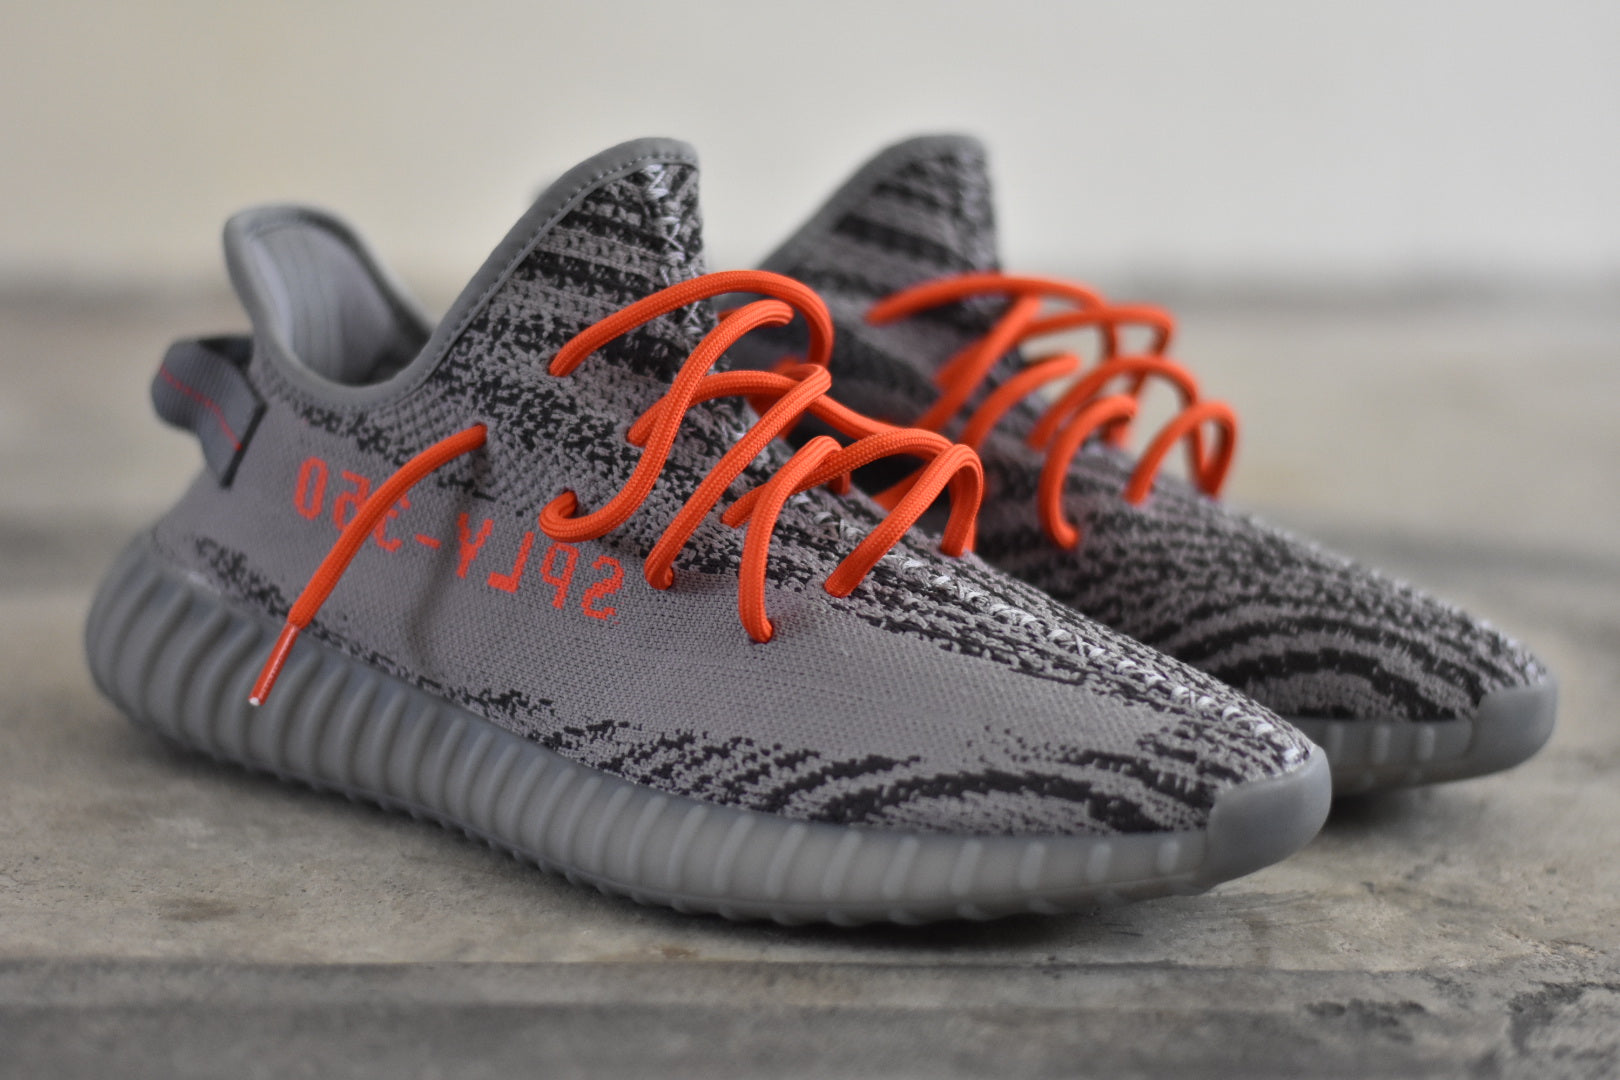 Where to buy replacement shoe laces for ADIDAS Yeezy Boost 350 V2 ...